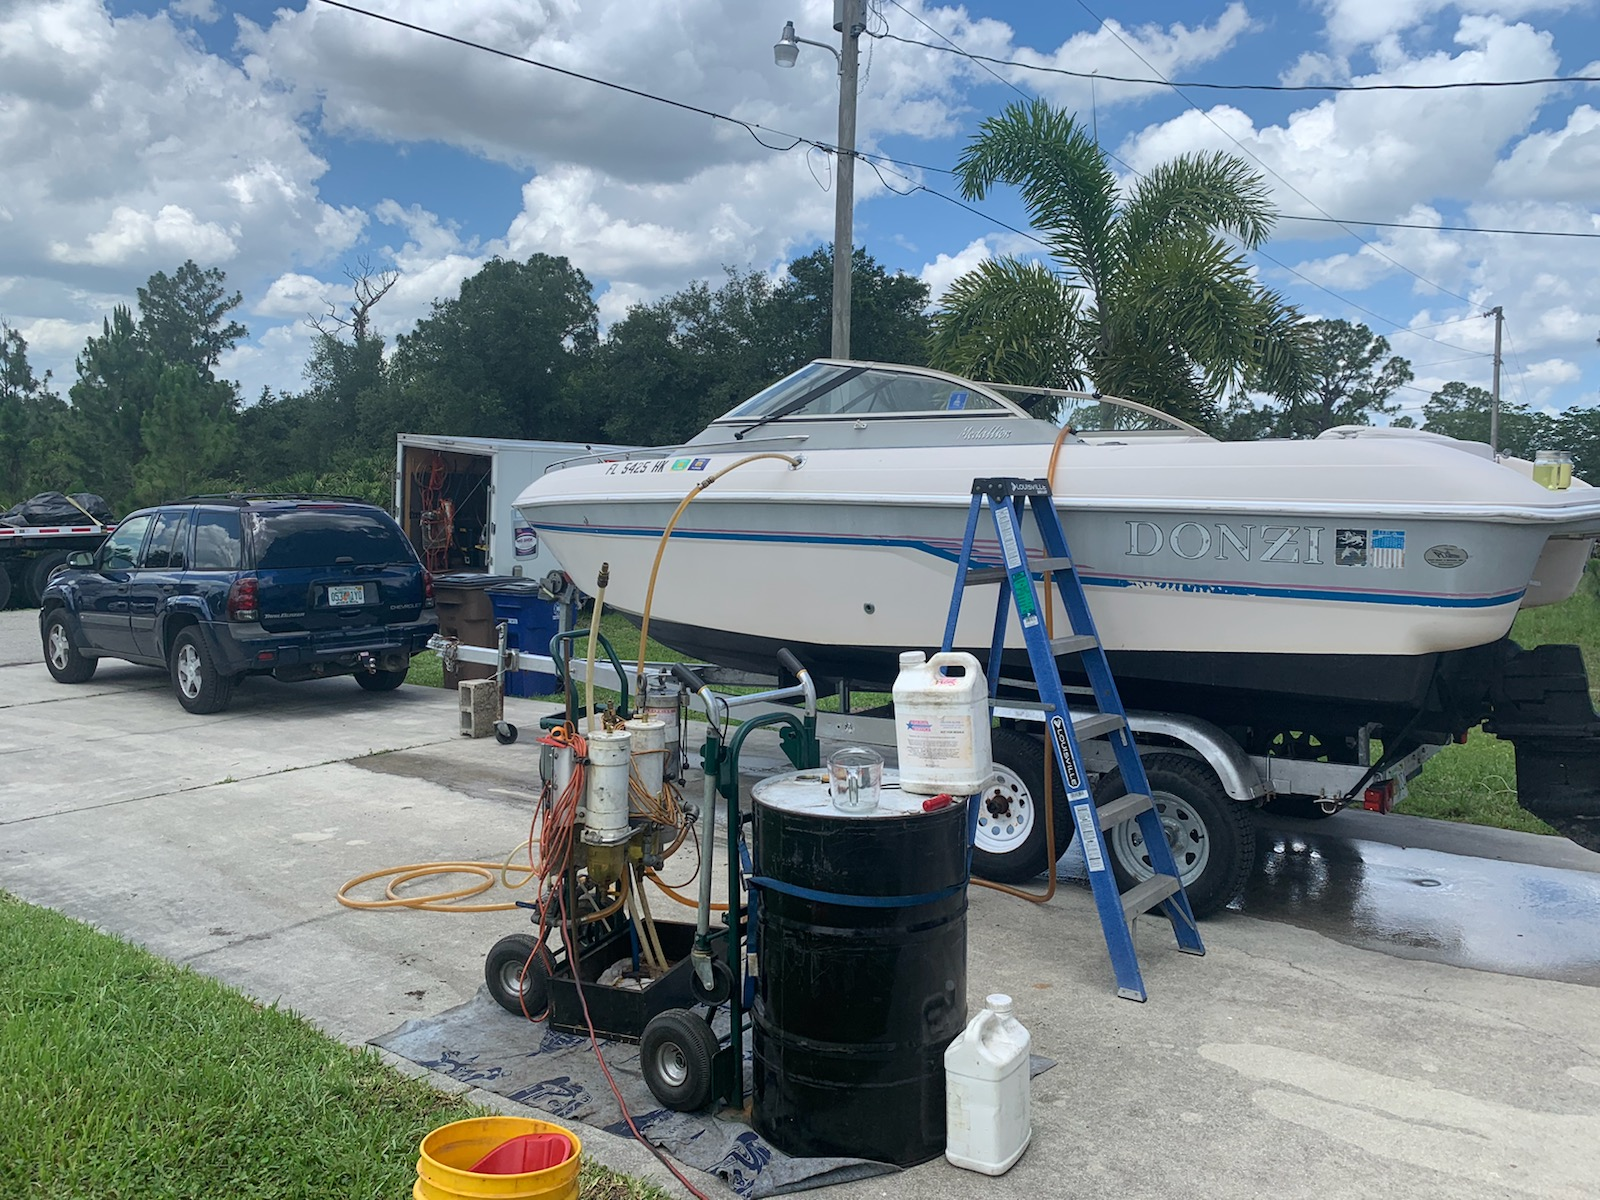 cleaning fuel in a boat in florida